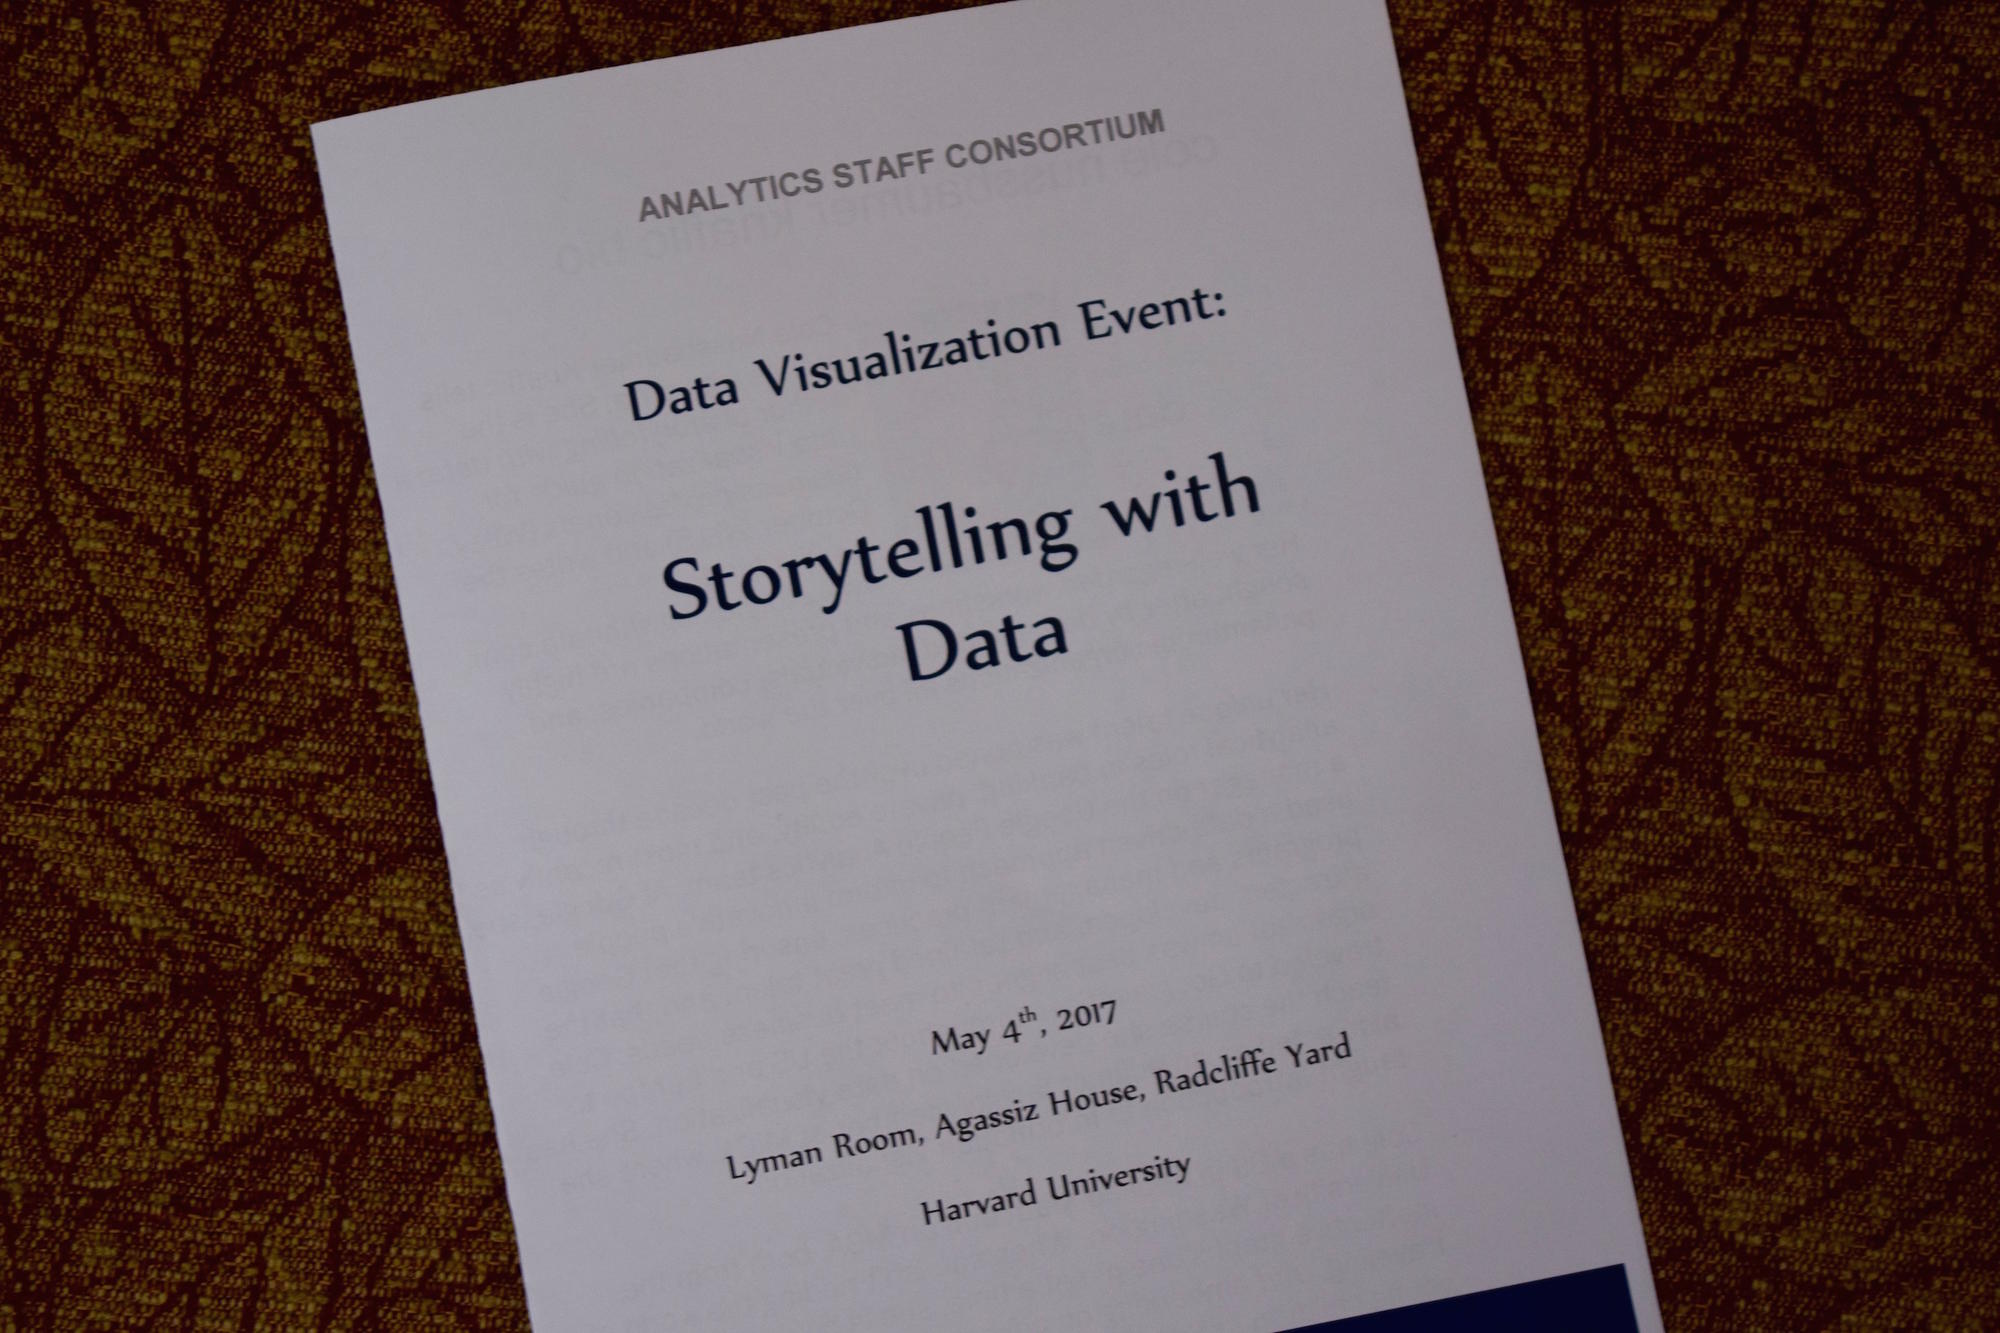 data viz event photo 1